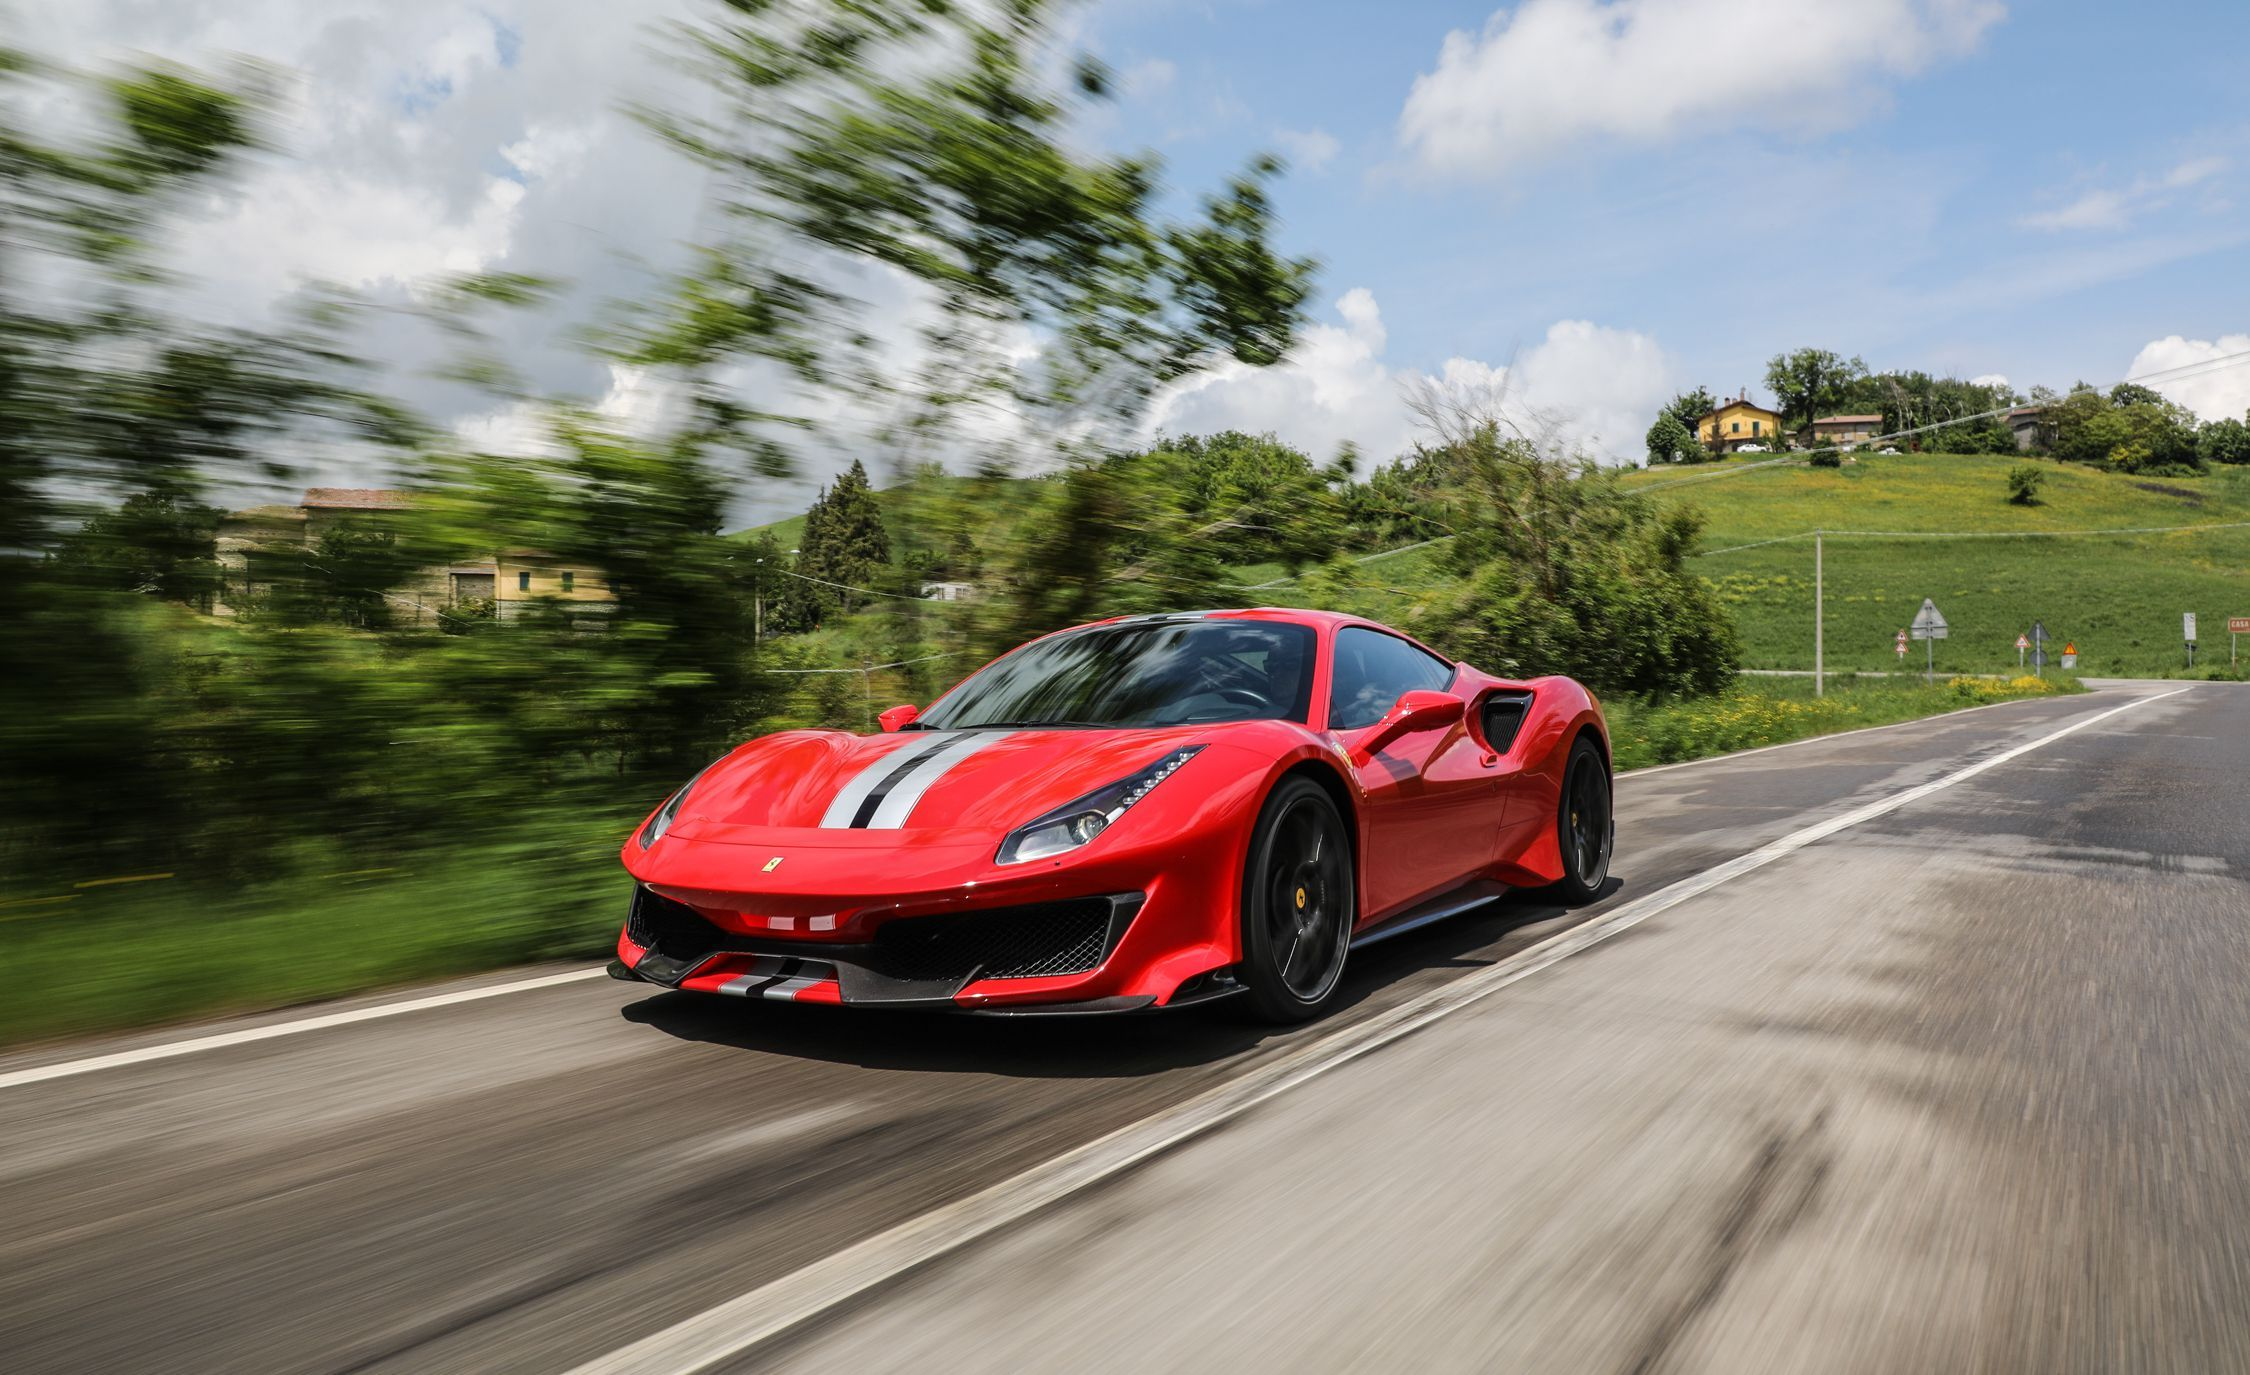 2019 Ferrari 488GTB Review, Pricing, and Specs